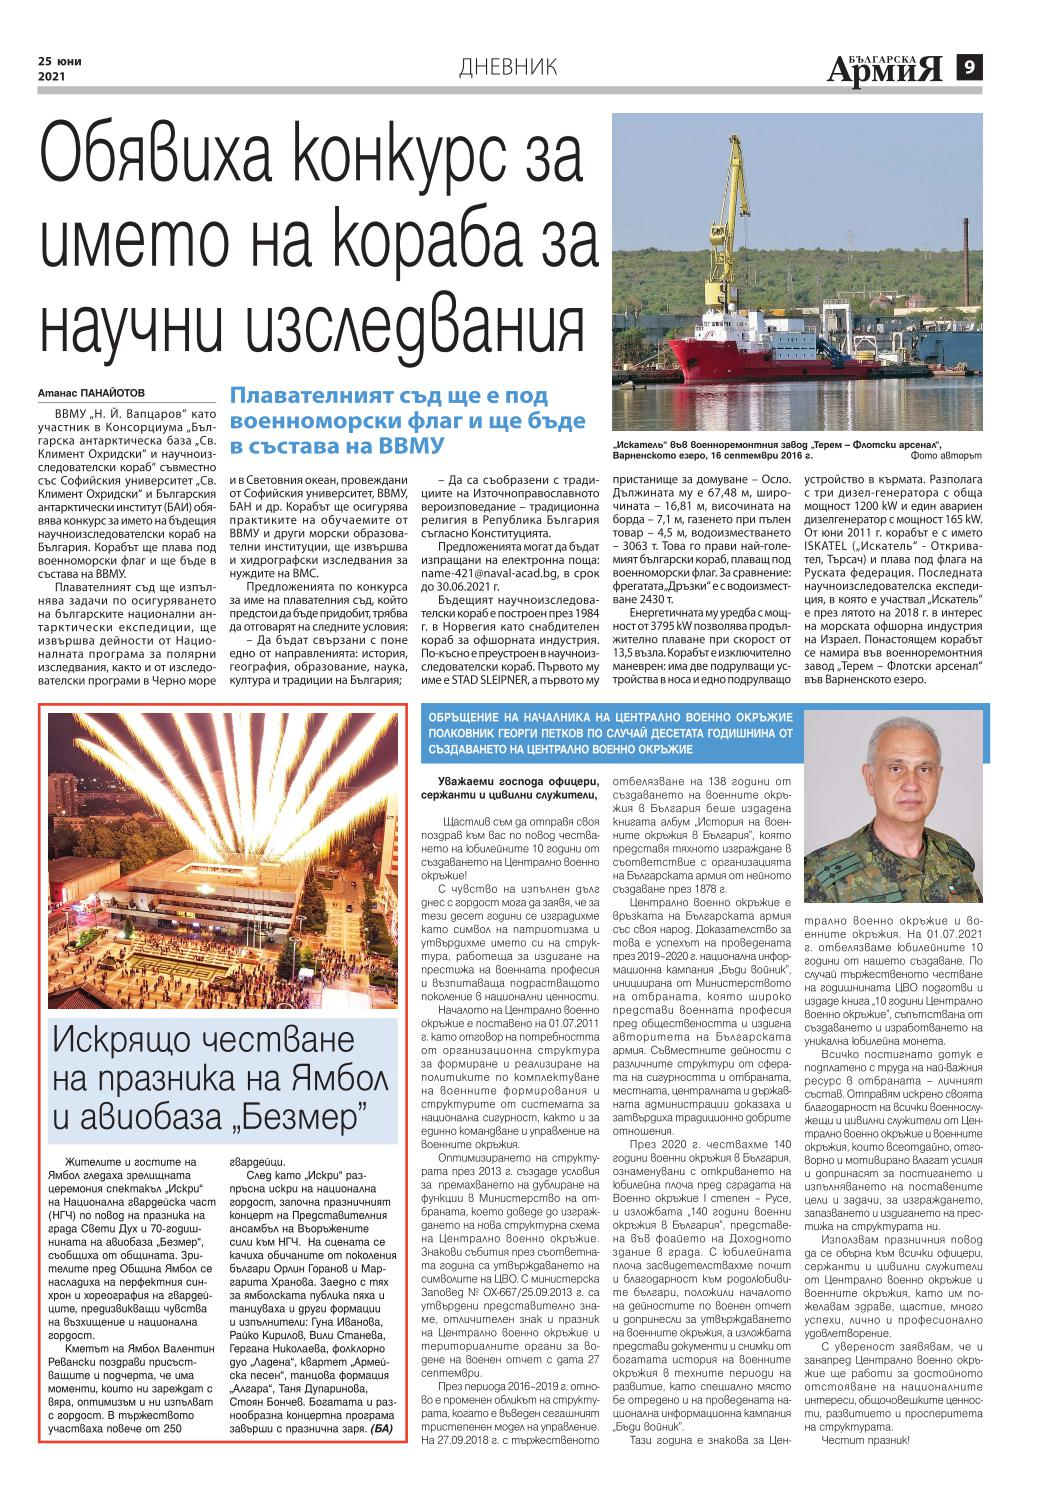 https://armymedia.bg/wp-content/uploads/2021/06/09.page1_-3.jpg